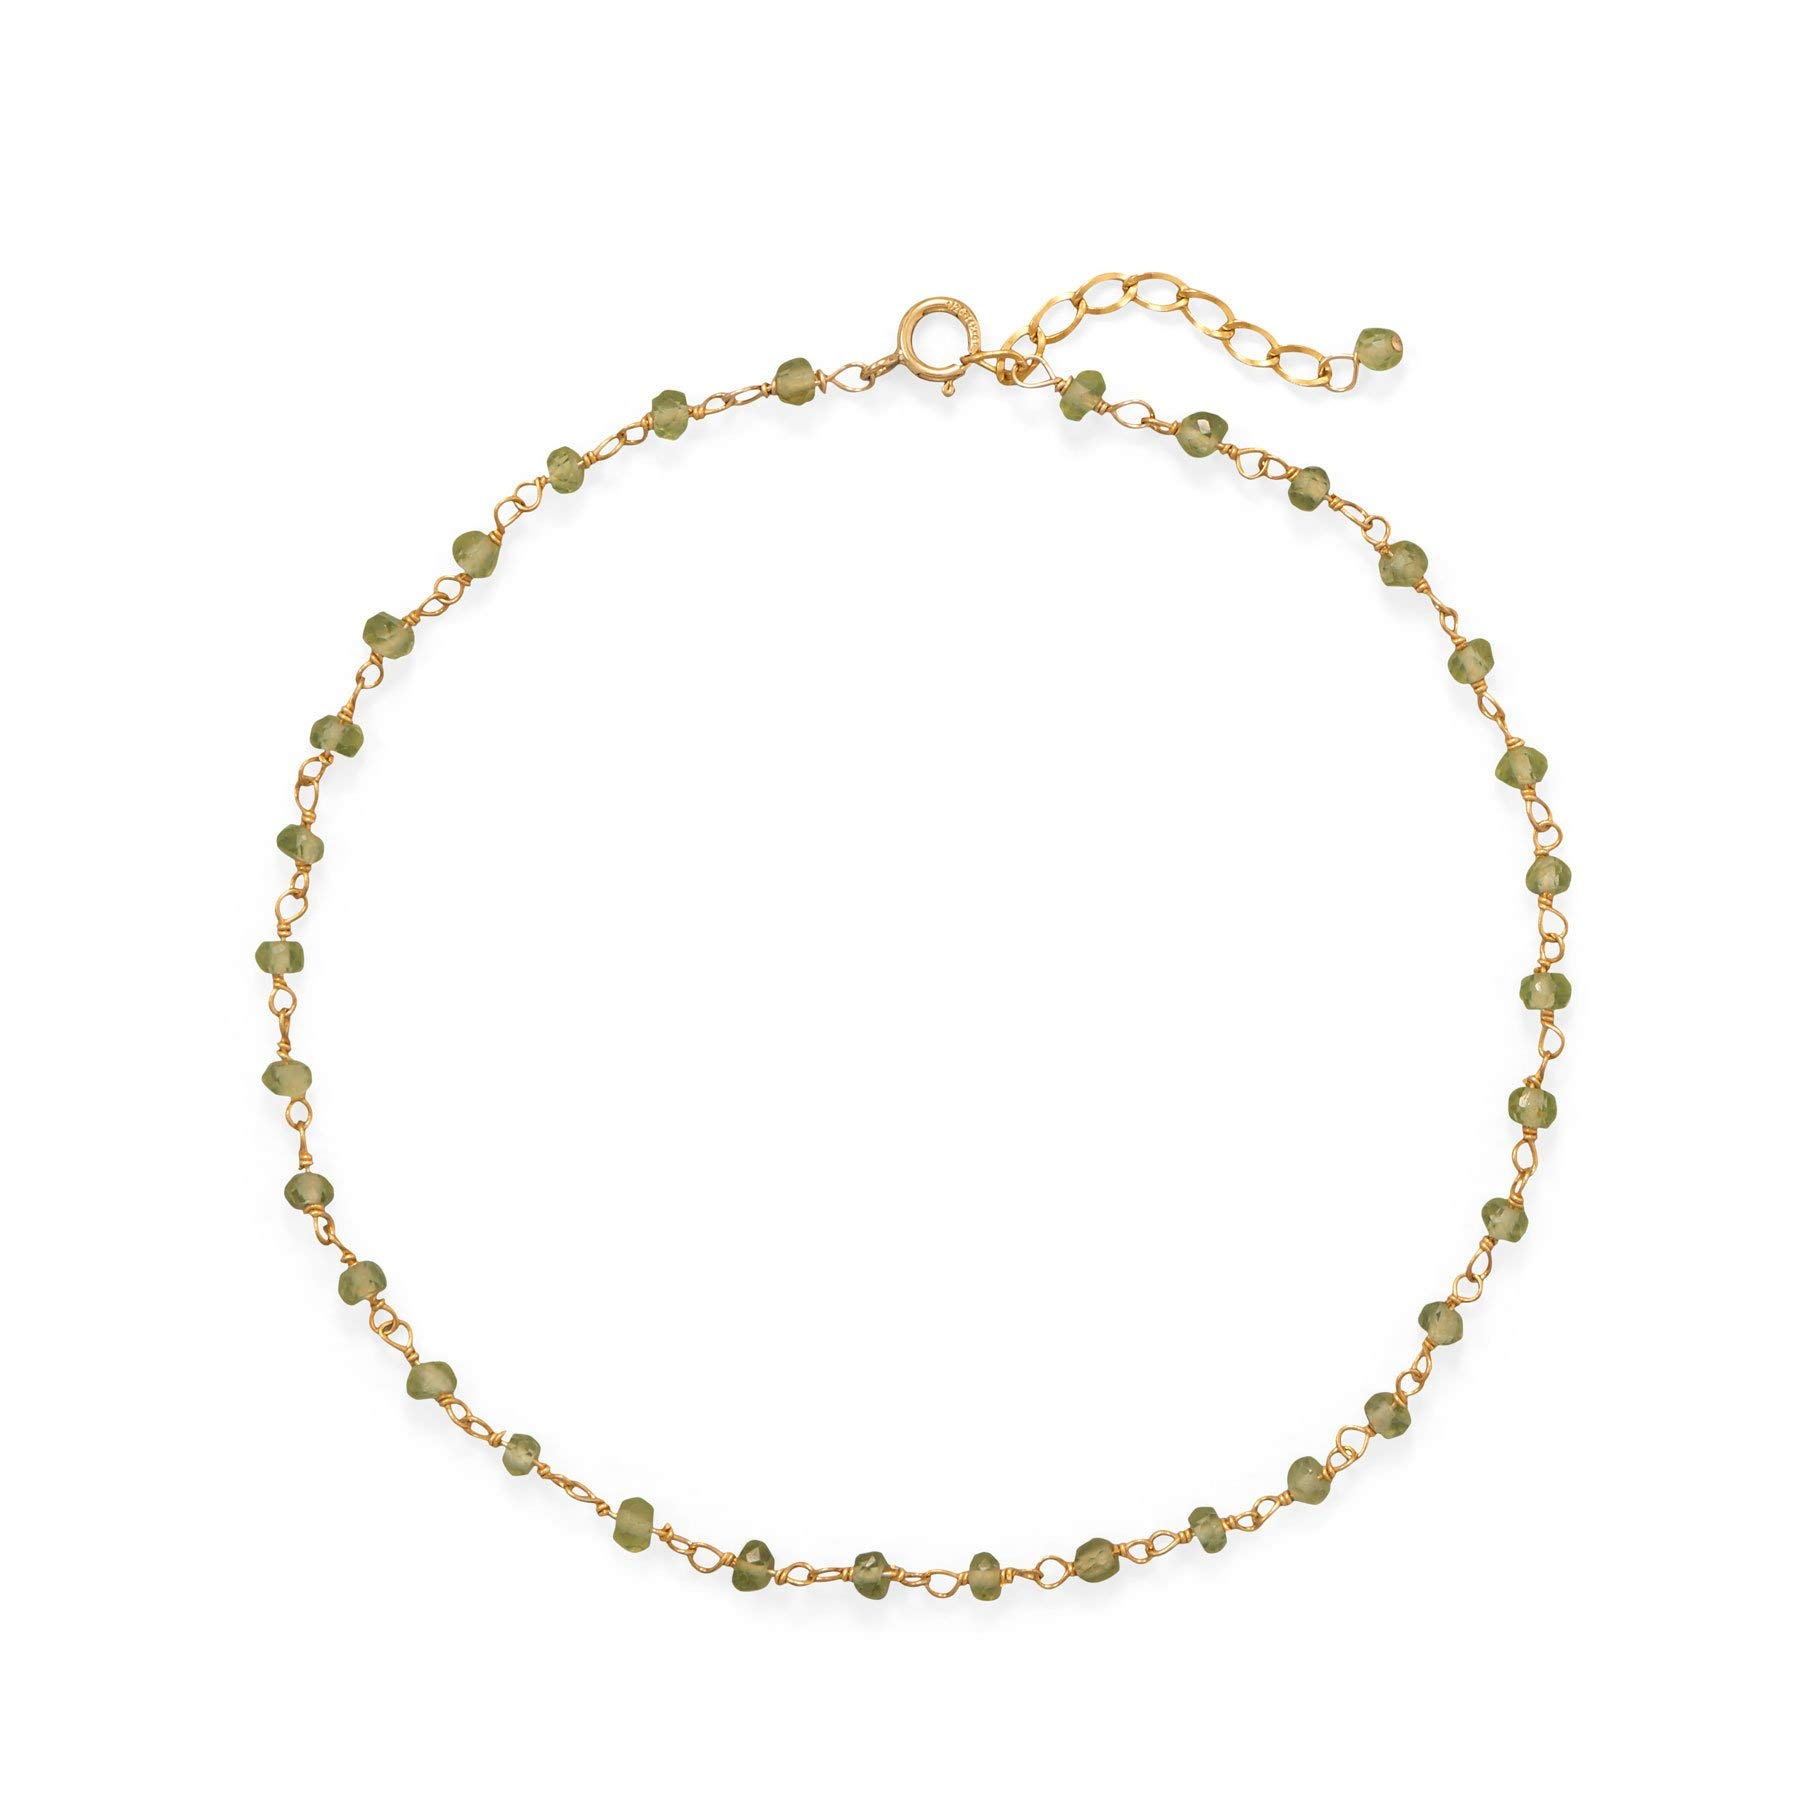 Precious Stars Jewelry 14k Gold Plated Sterling Silver Green Peridot Anklet by Precious Stars Jewelry (Image #1)